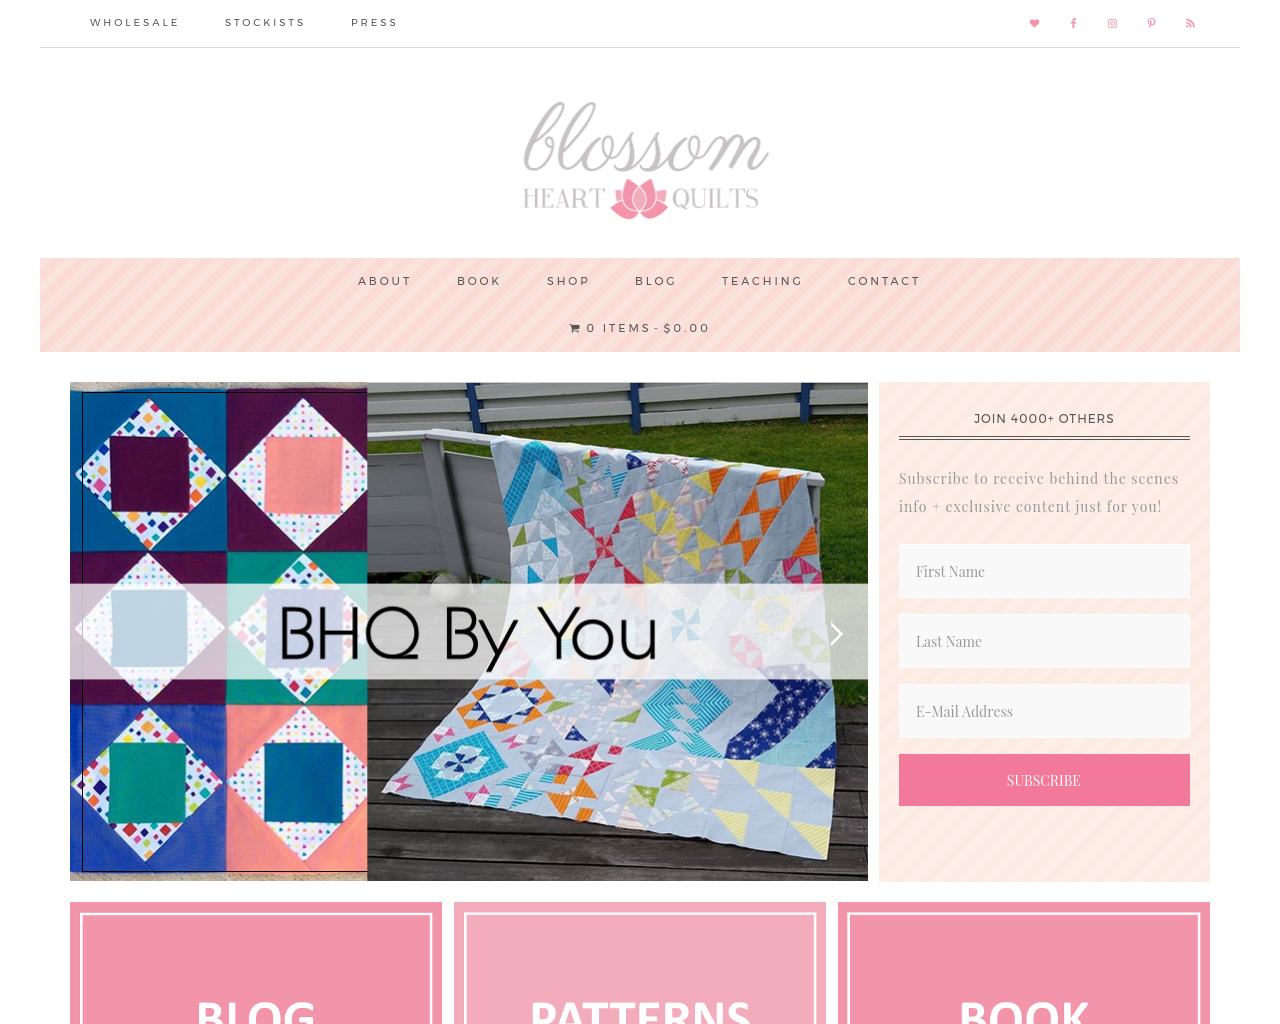 Blossom-Heart-Quilts-Advertising-Reviews-Pricing